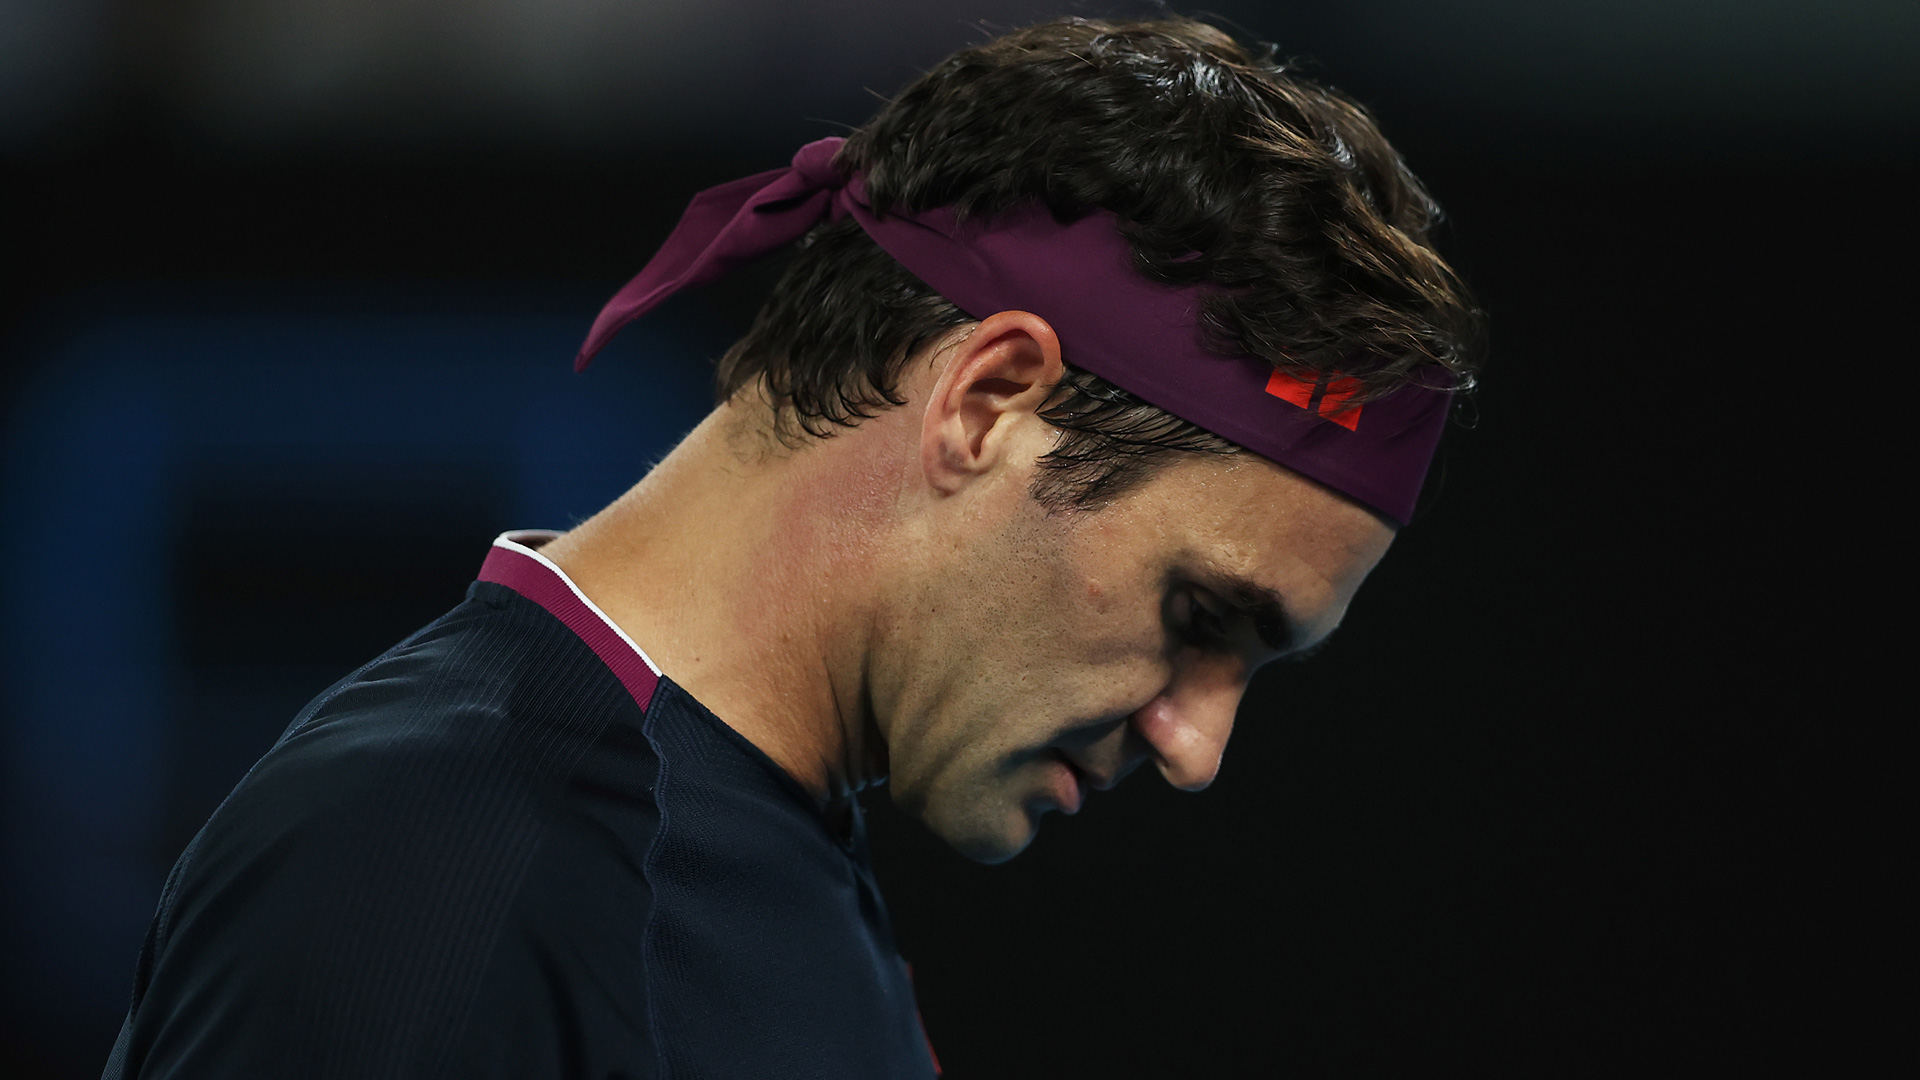 """Twenty-time grand slam champion Roger Federer will not play at Roland Garros following knee surgery, but he declared """"see you on the grass""""."""